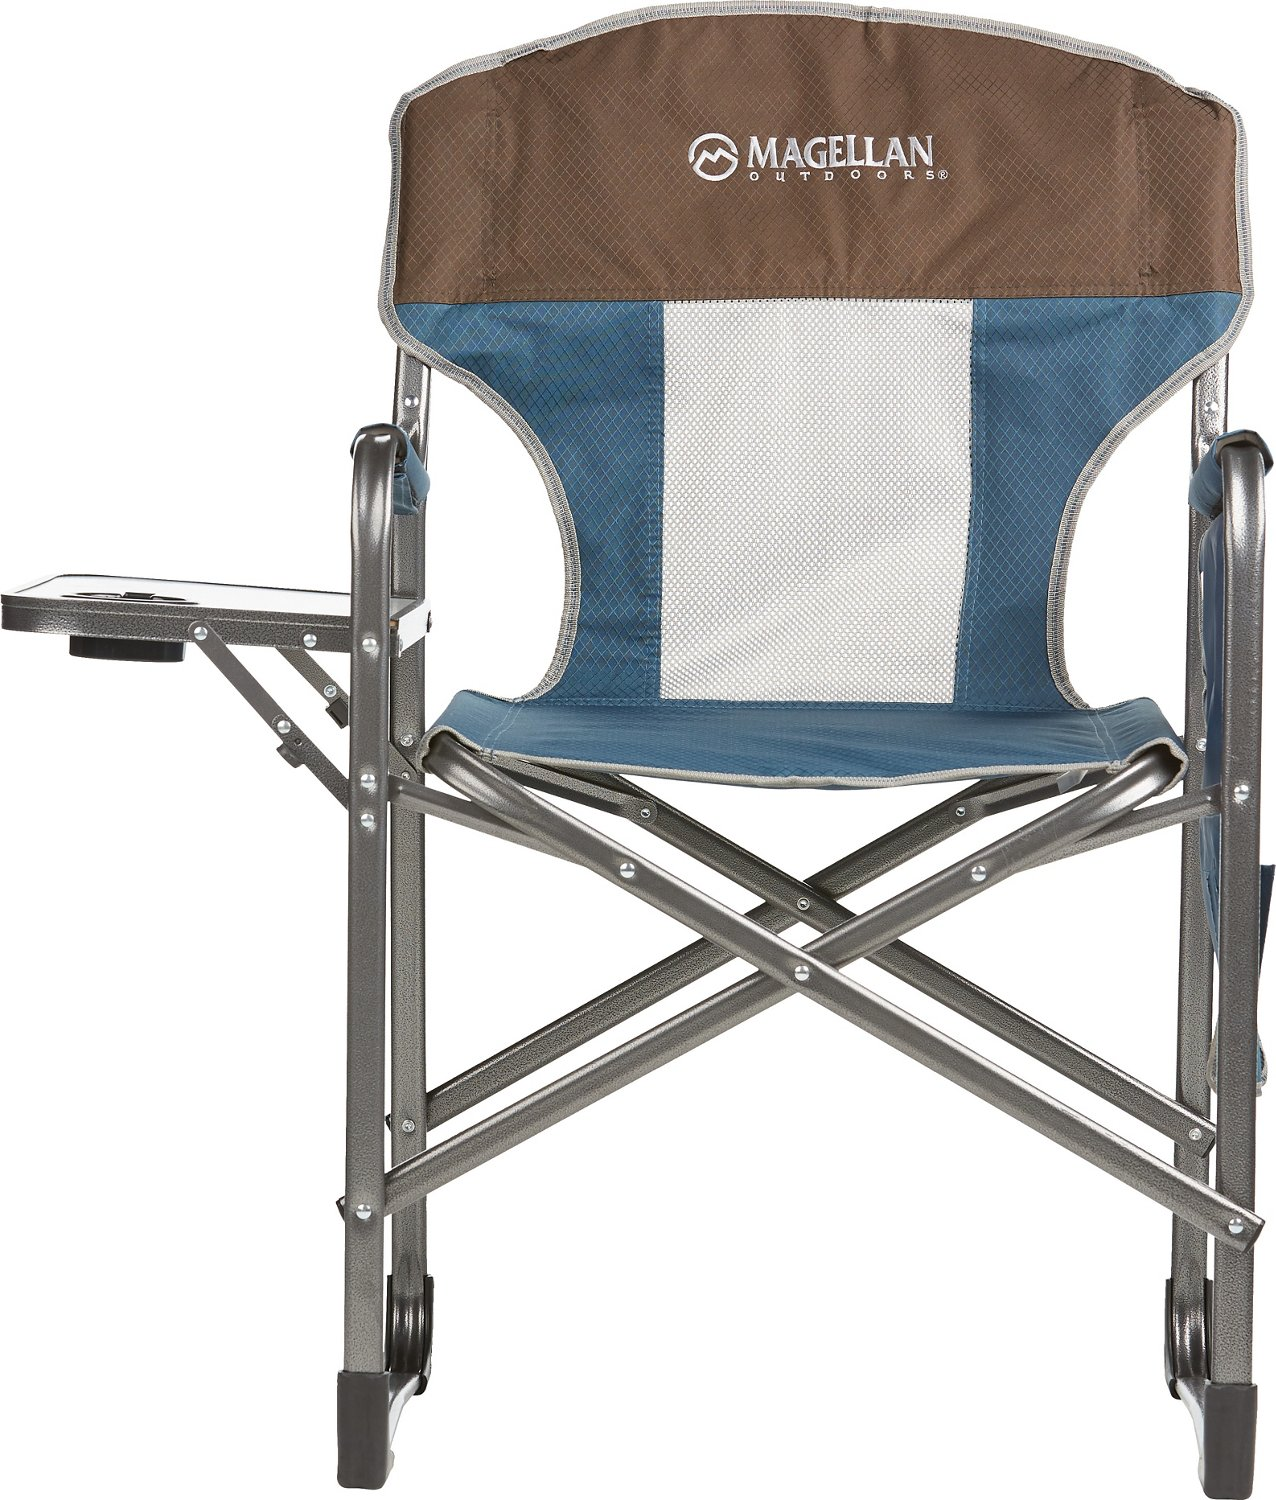 Magellan Outdoors Director's Chair - view number 2